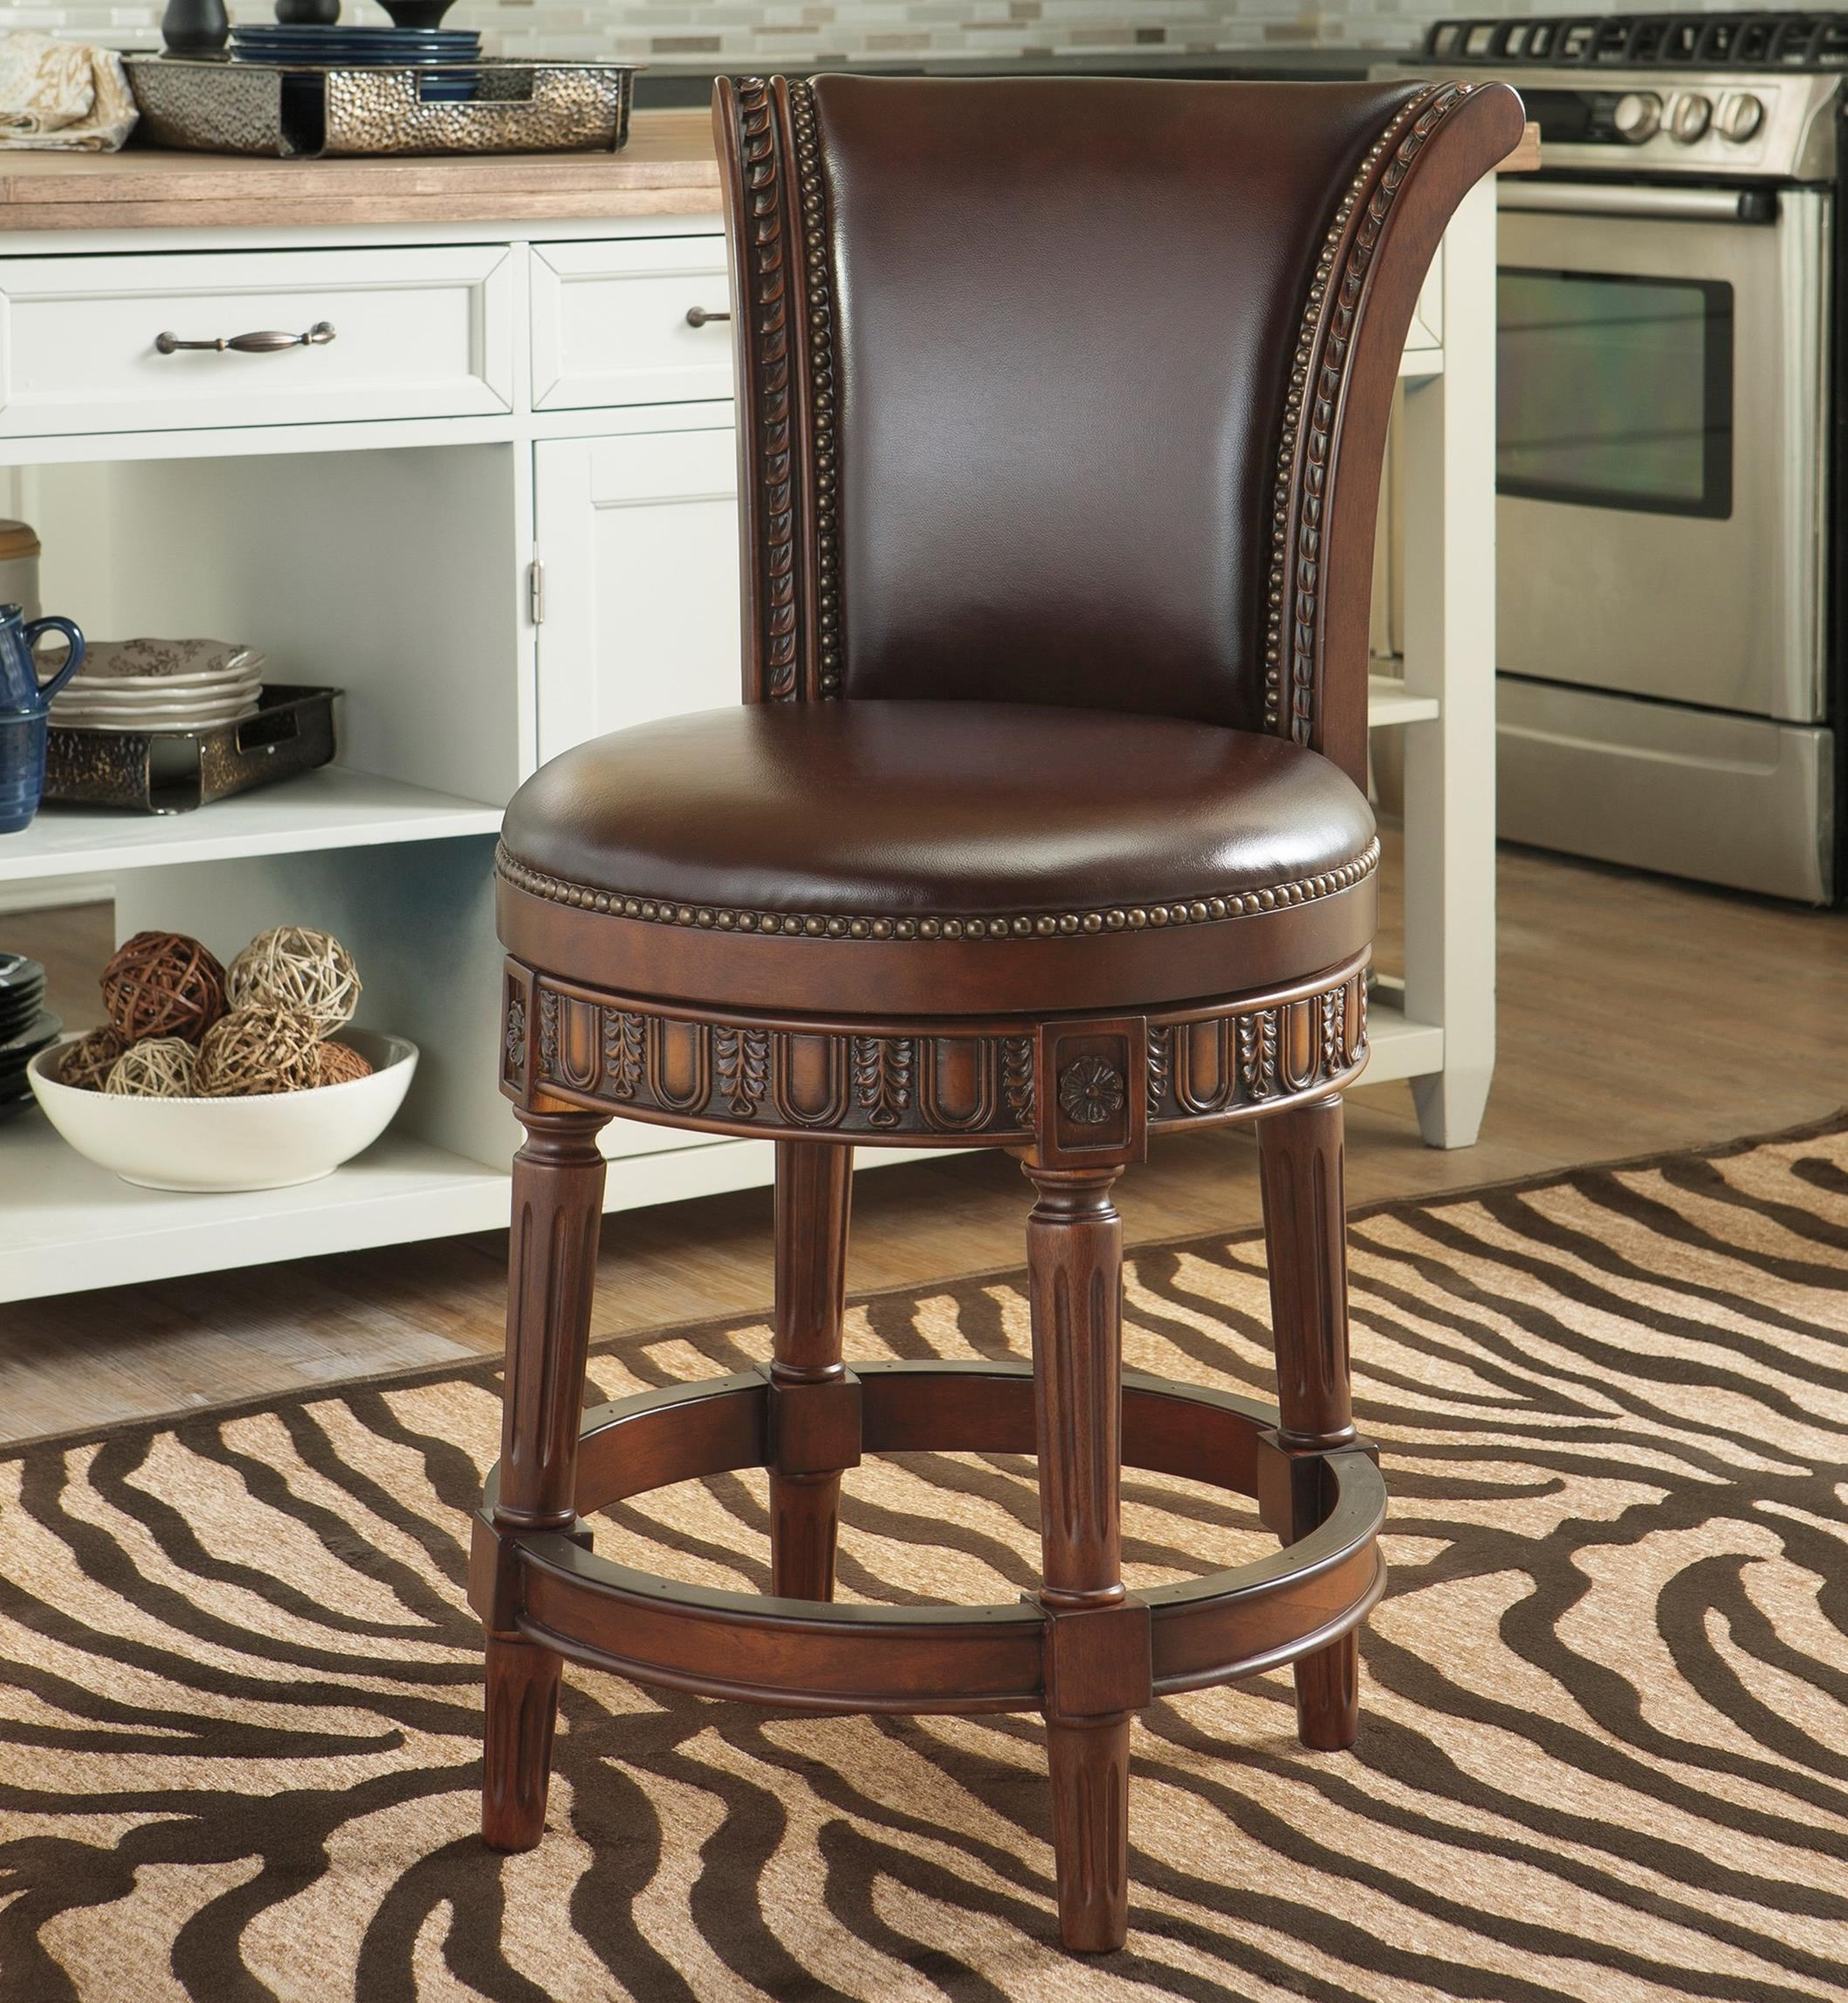 North Shore Upholstered Swivel Barstool by Millennium at Lapeer Furniture & Mattress Center